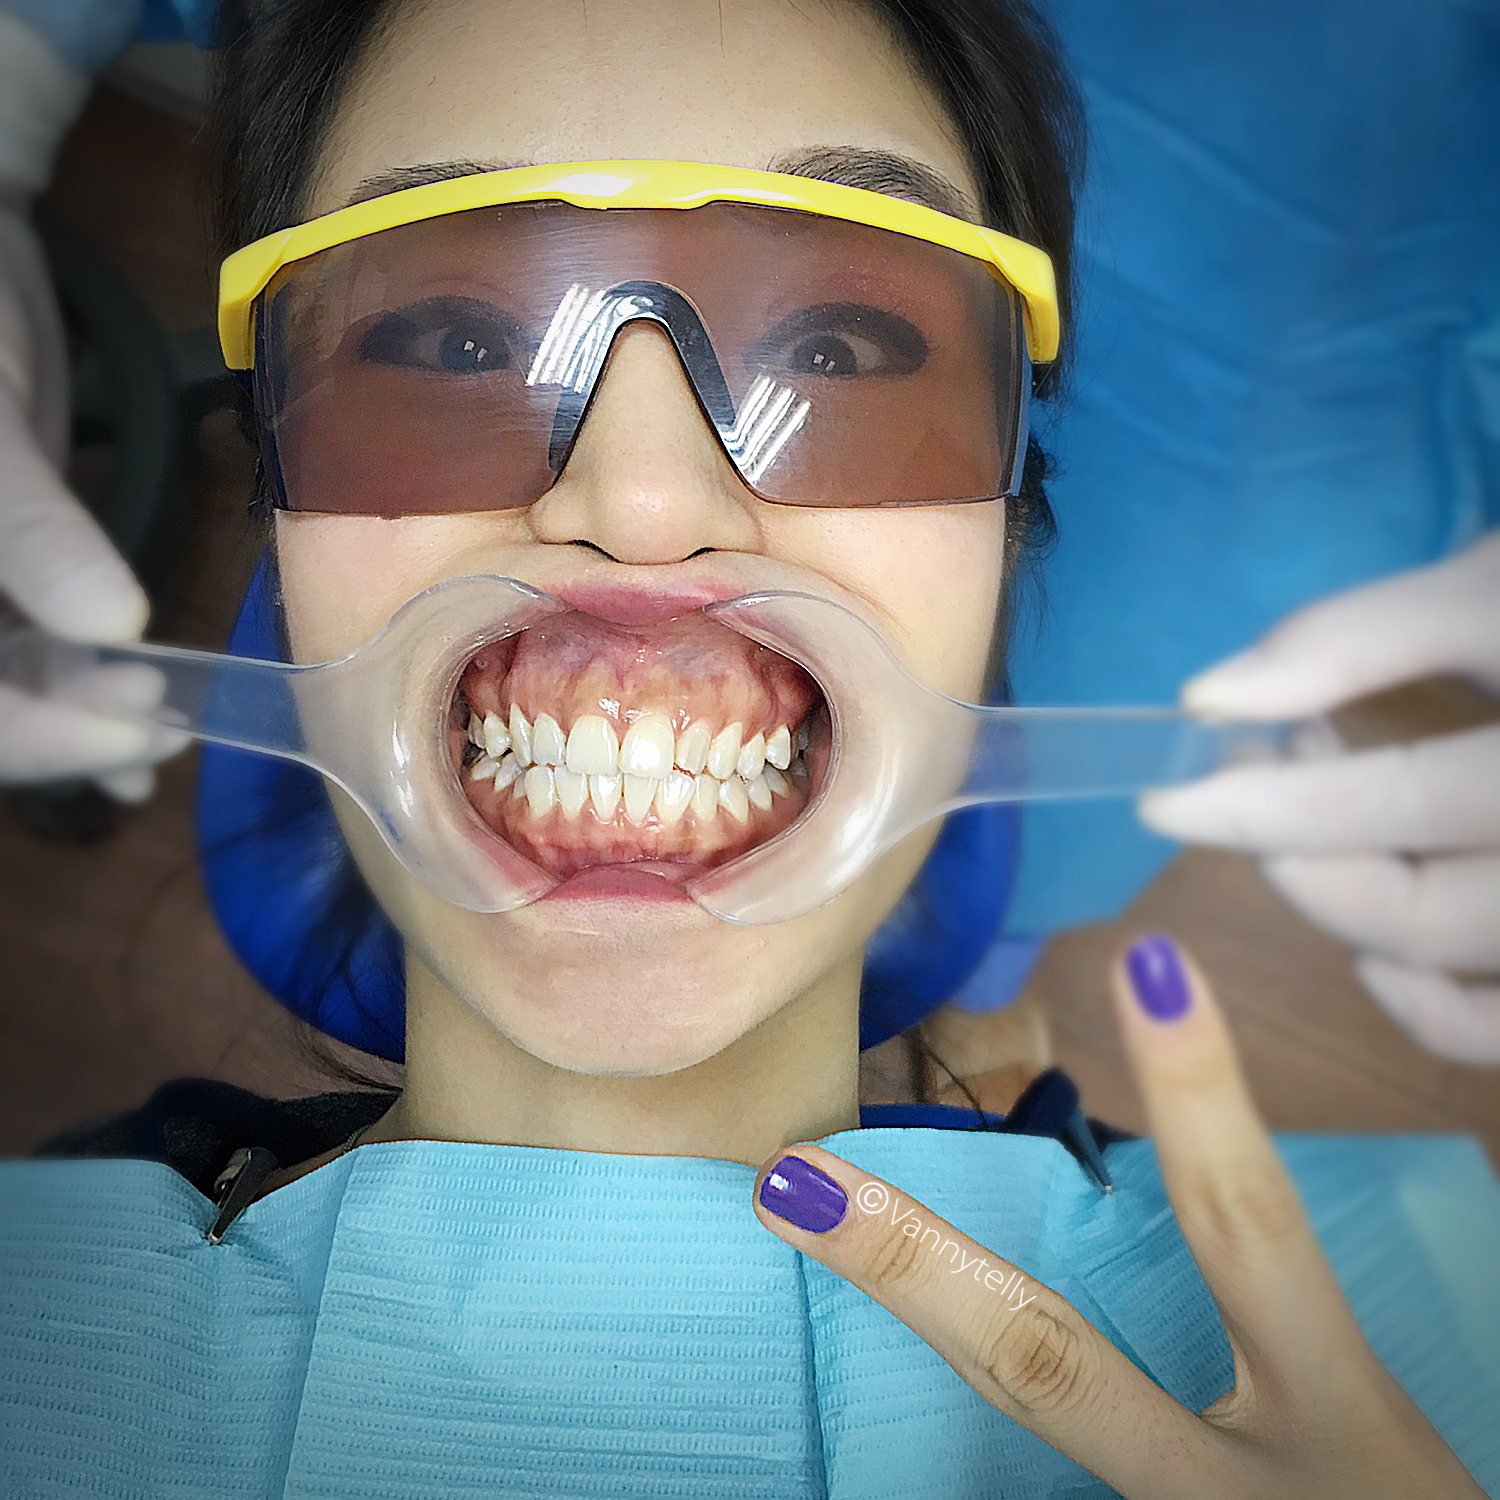 Wedding White Teeth: Vanny's Telling Everything.: Wedding Beauty Tips For The